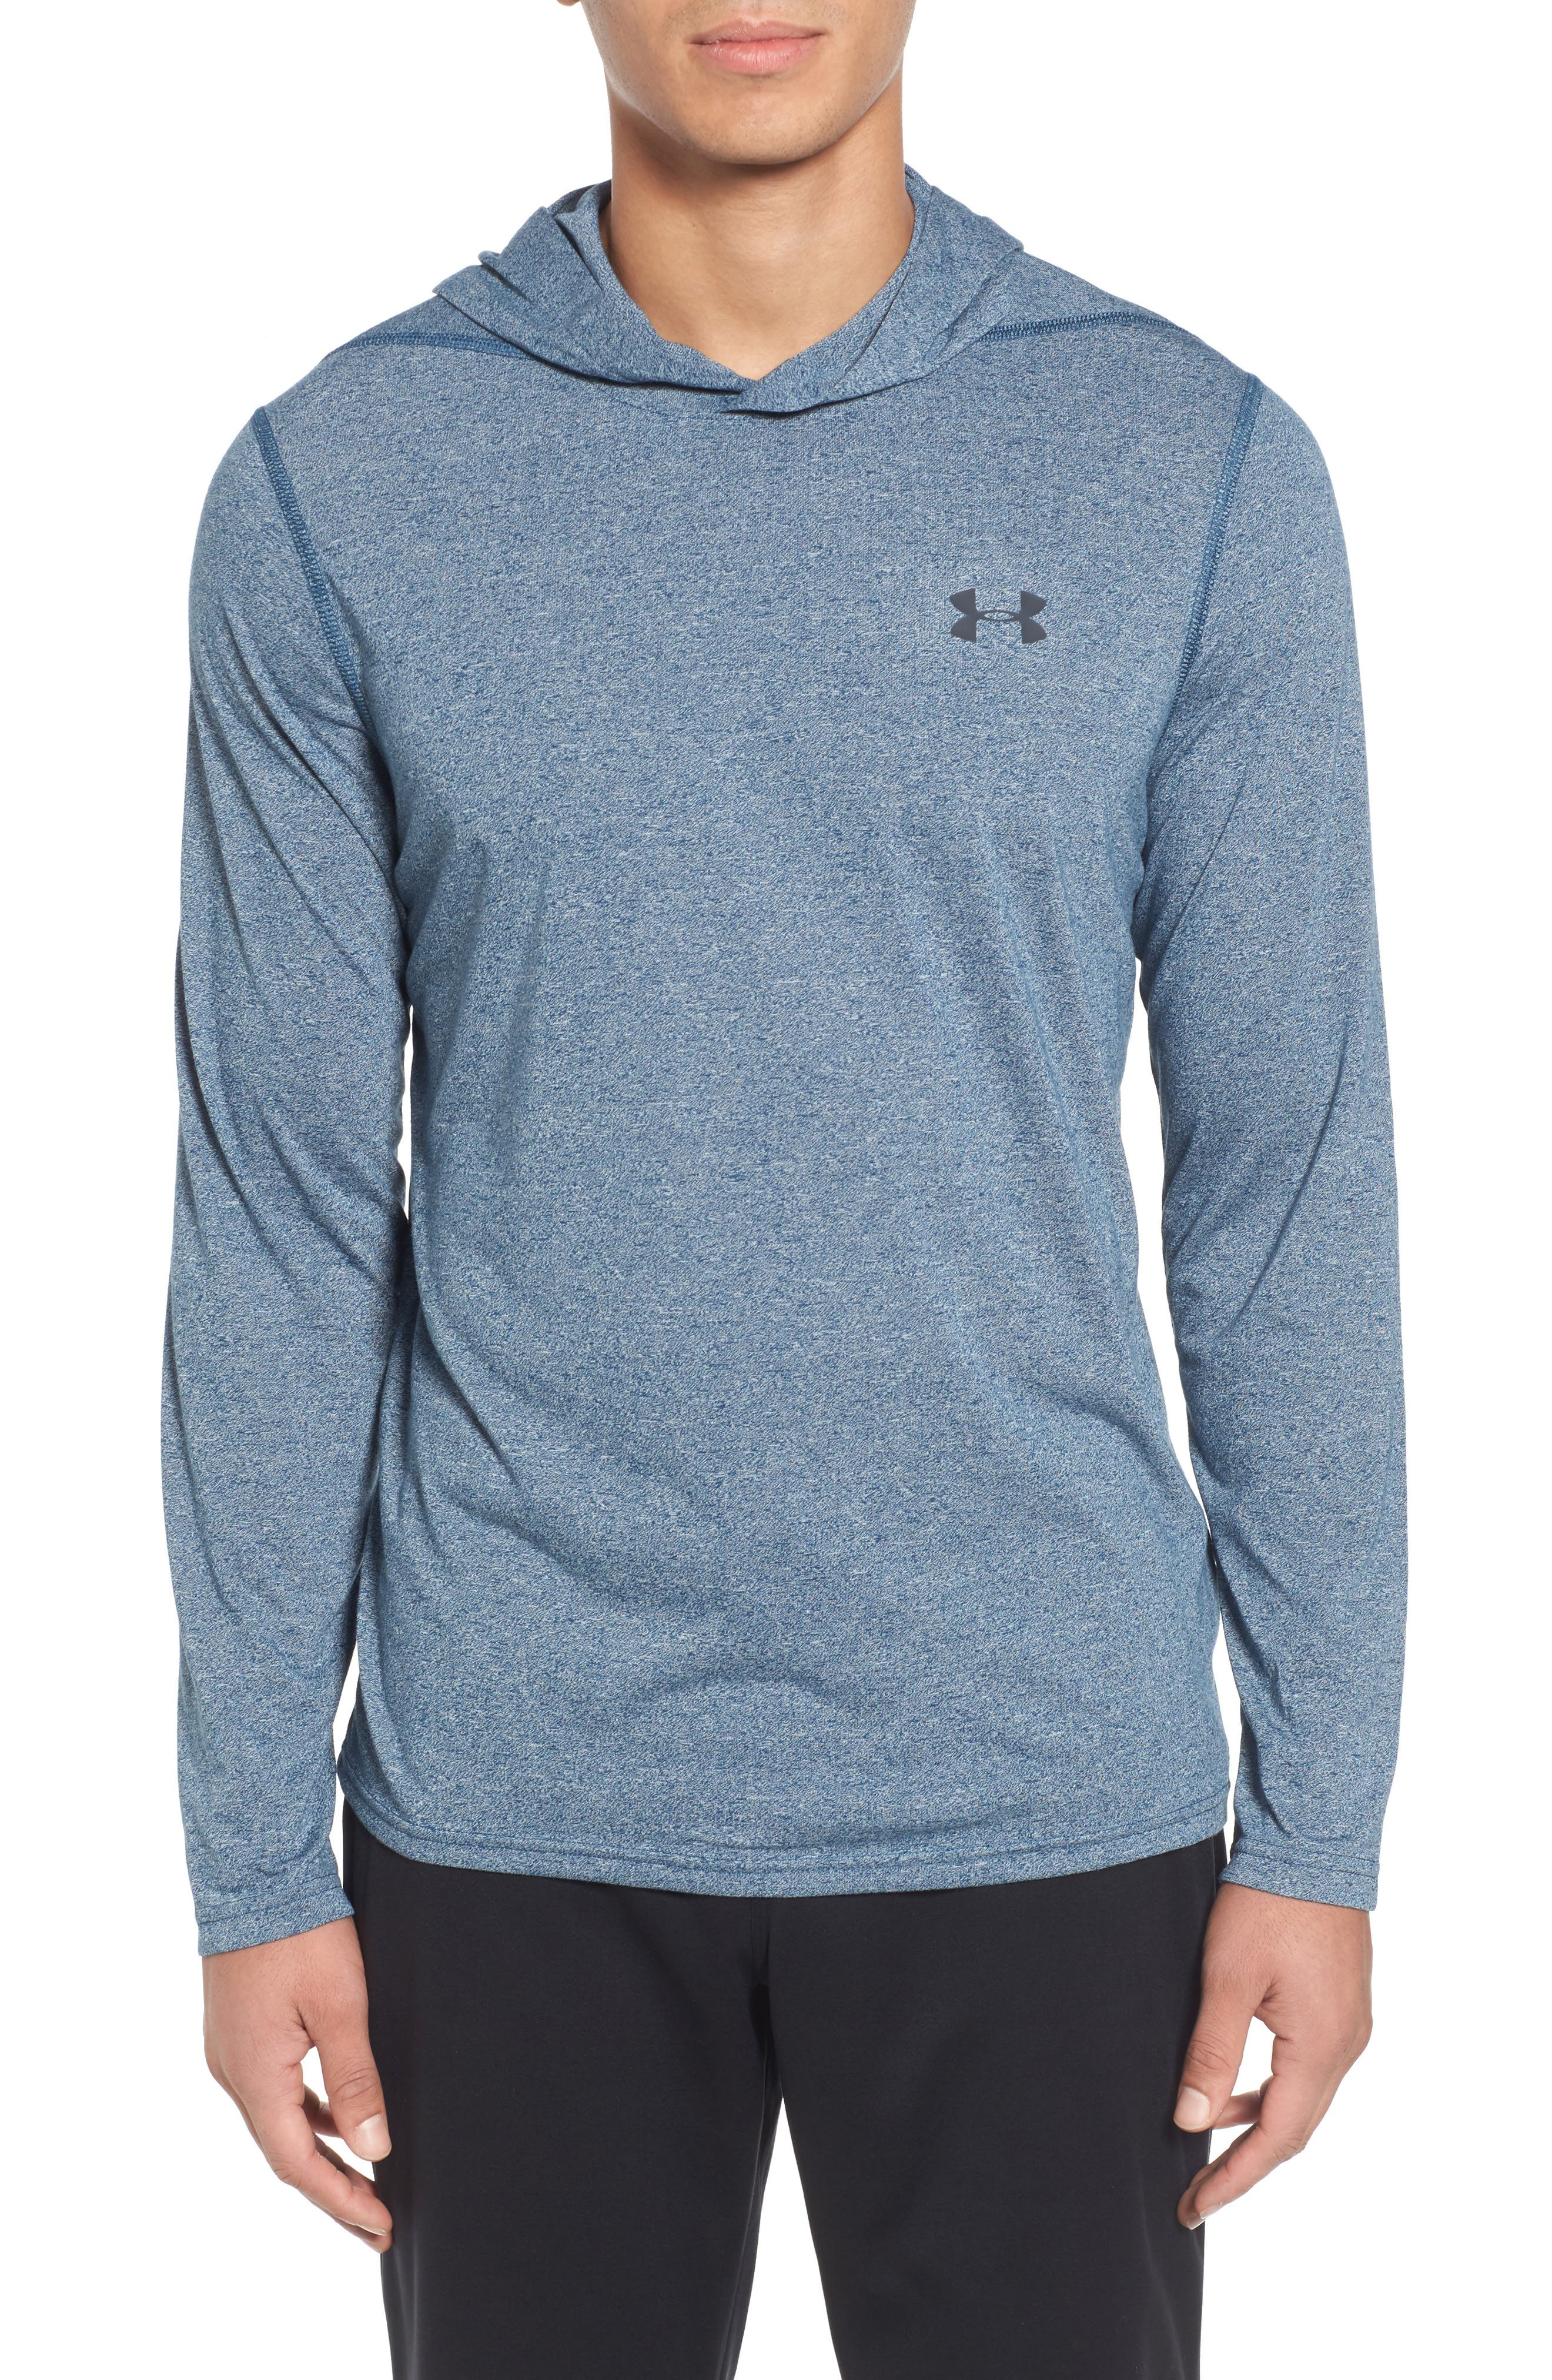 Under Armour Regular Fit Threadborne Hoodie